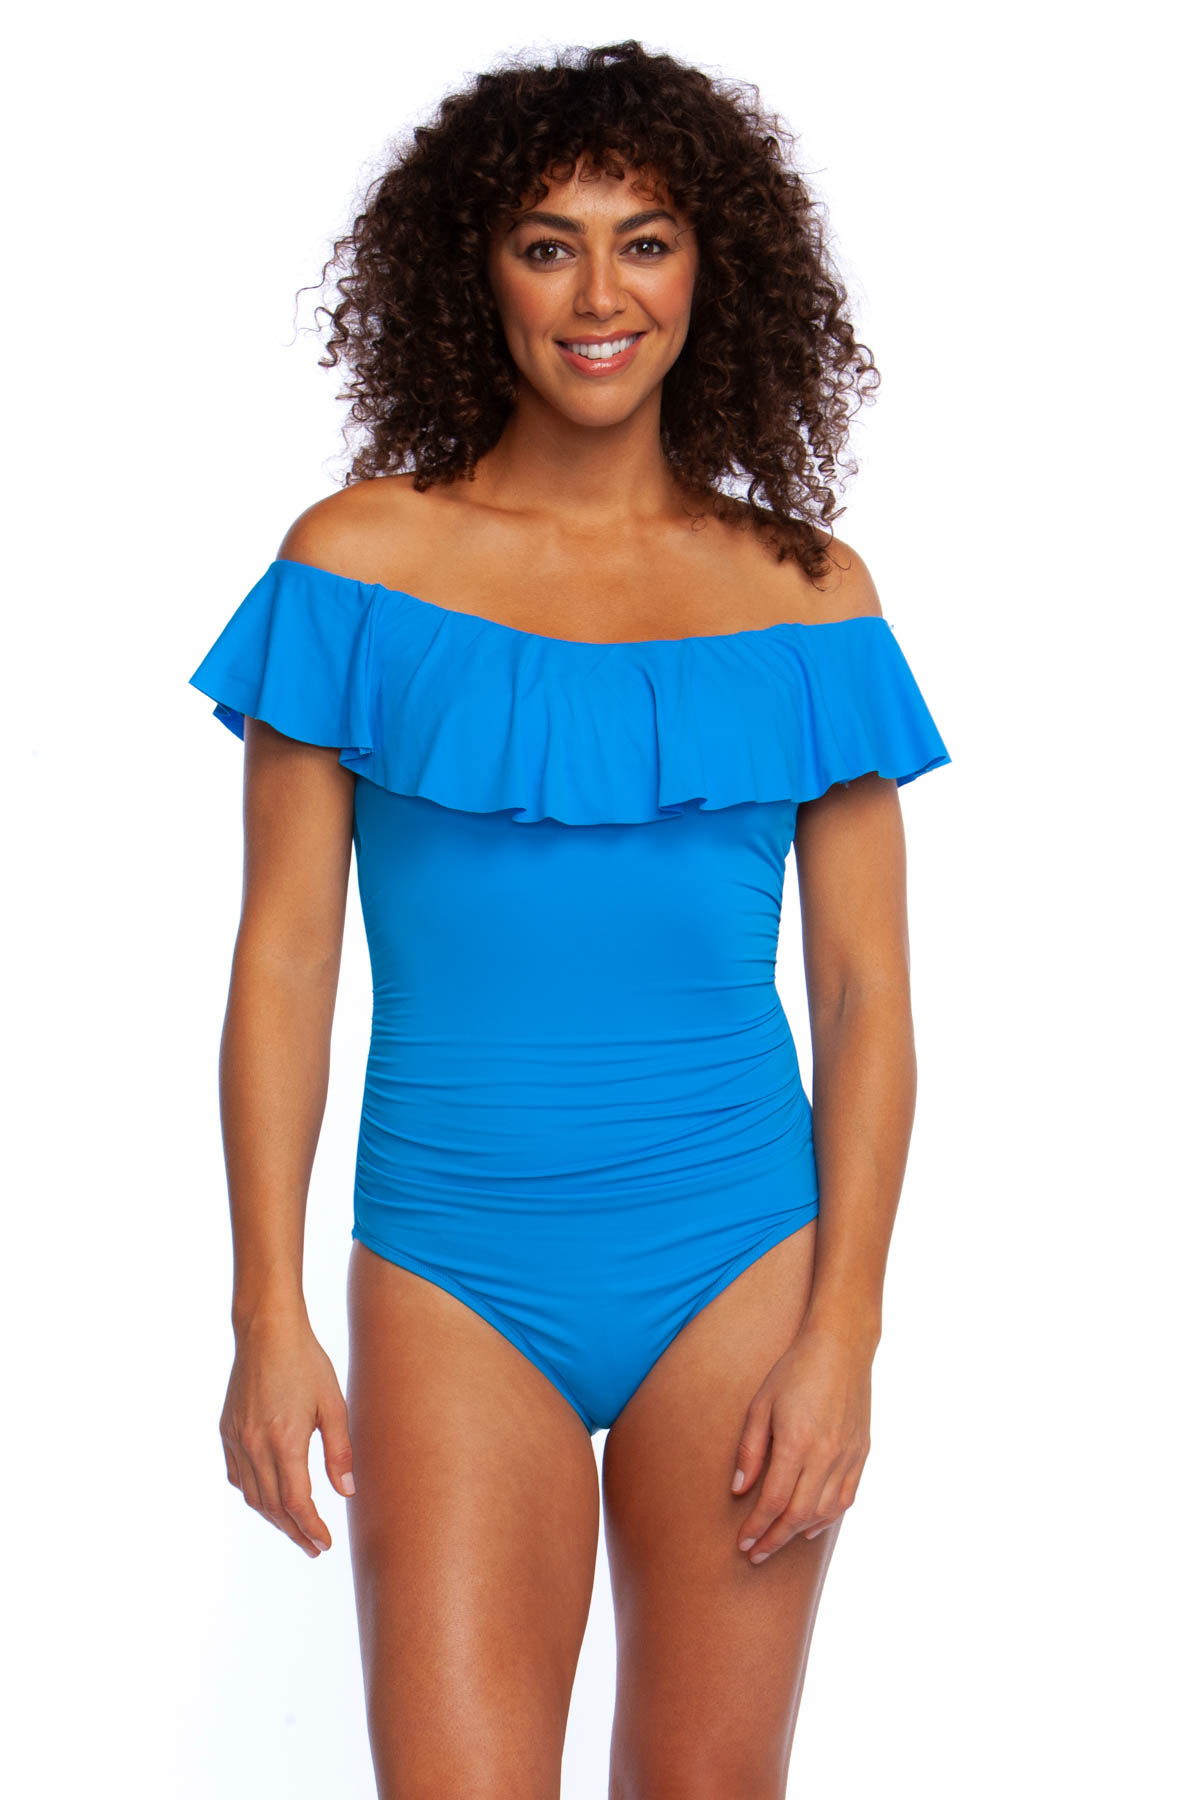 Flounce Bandeau One Piece Swimsuit - Chambray 3